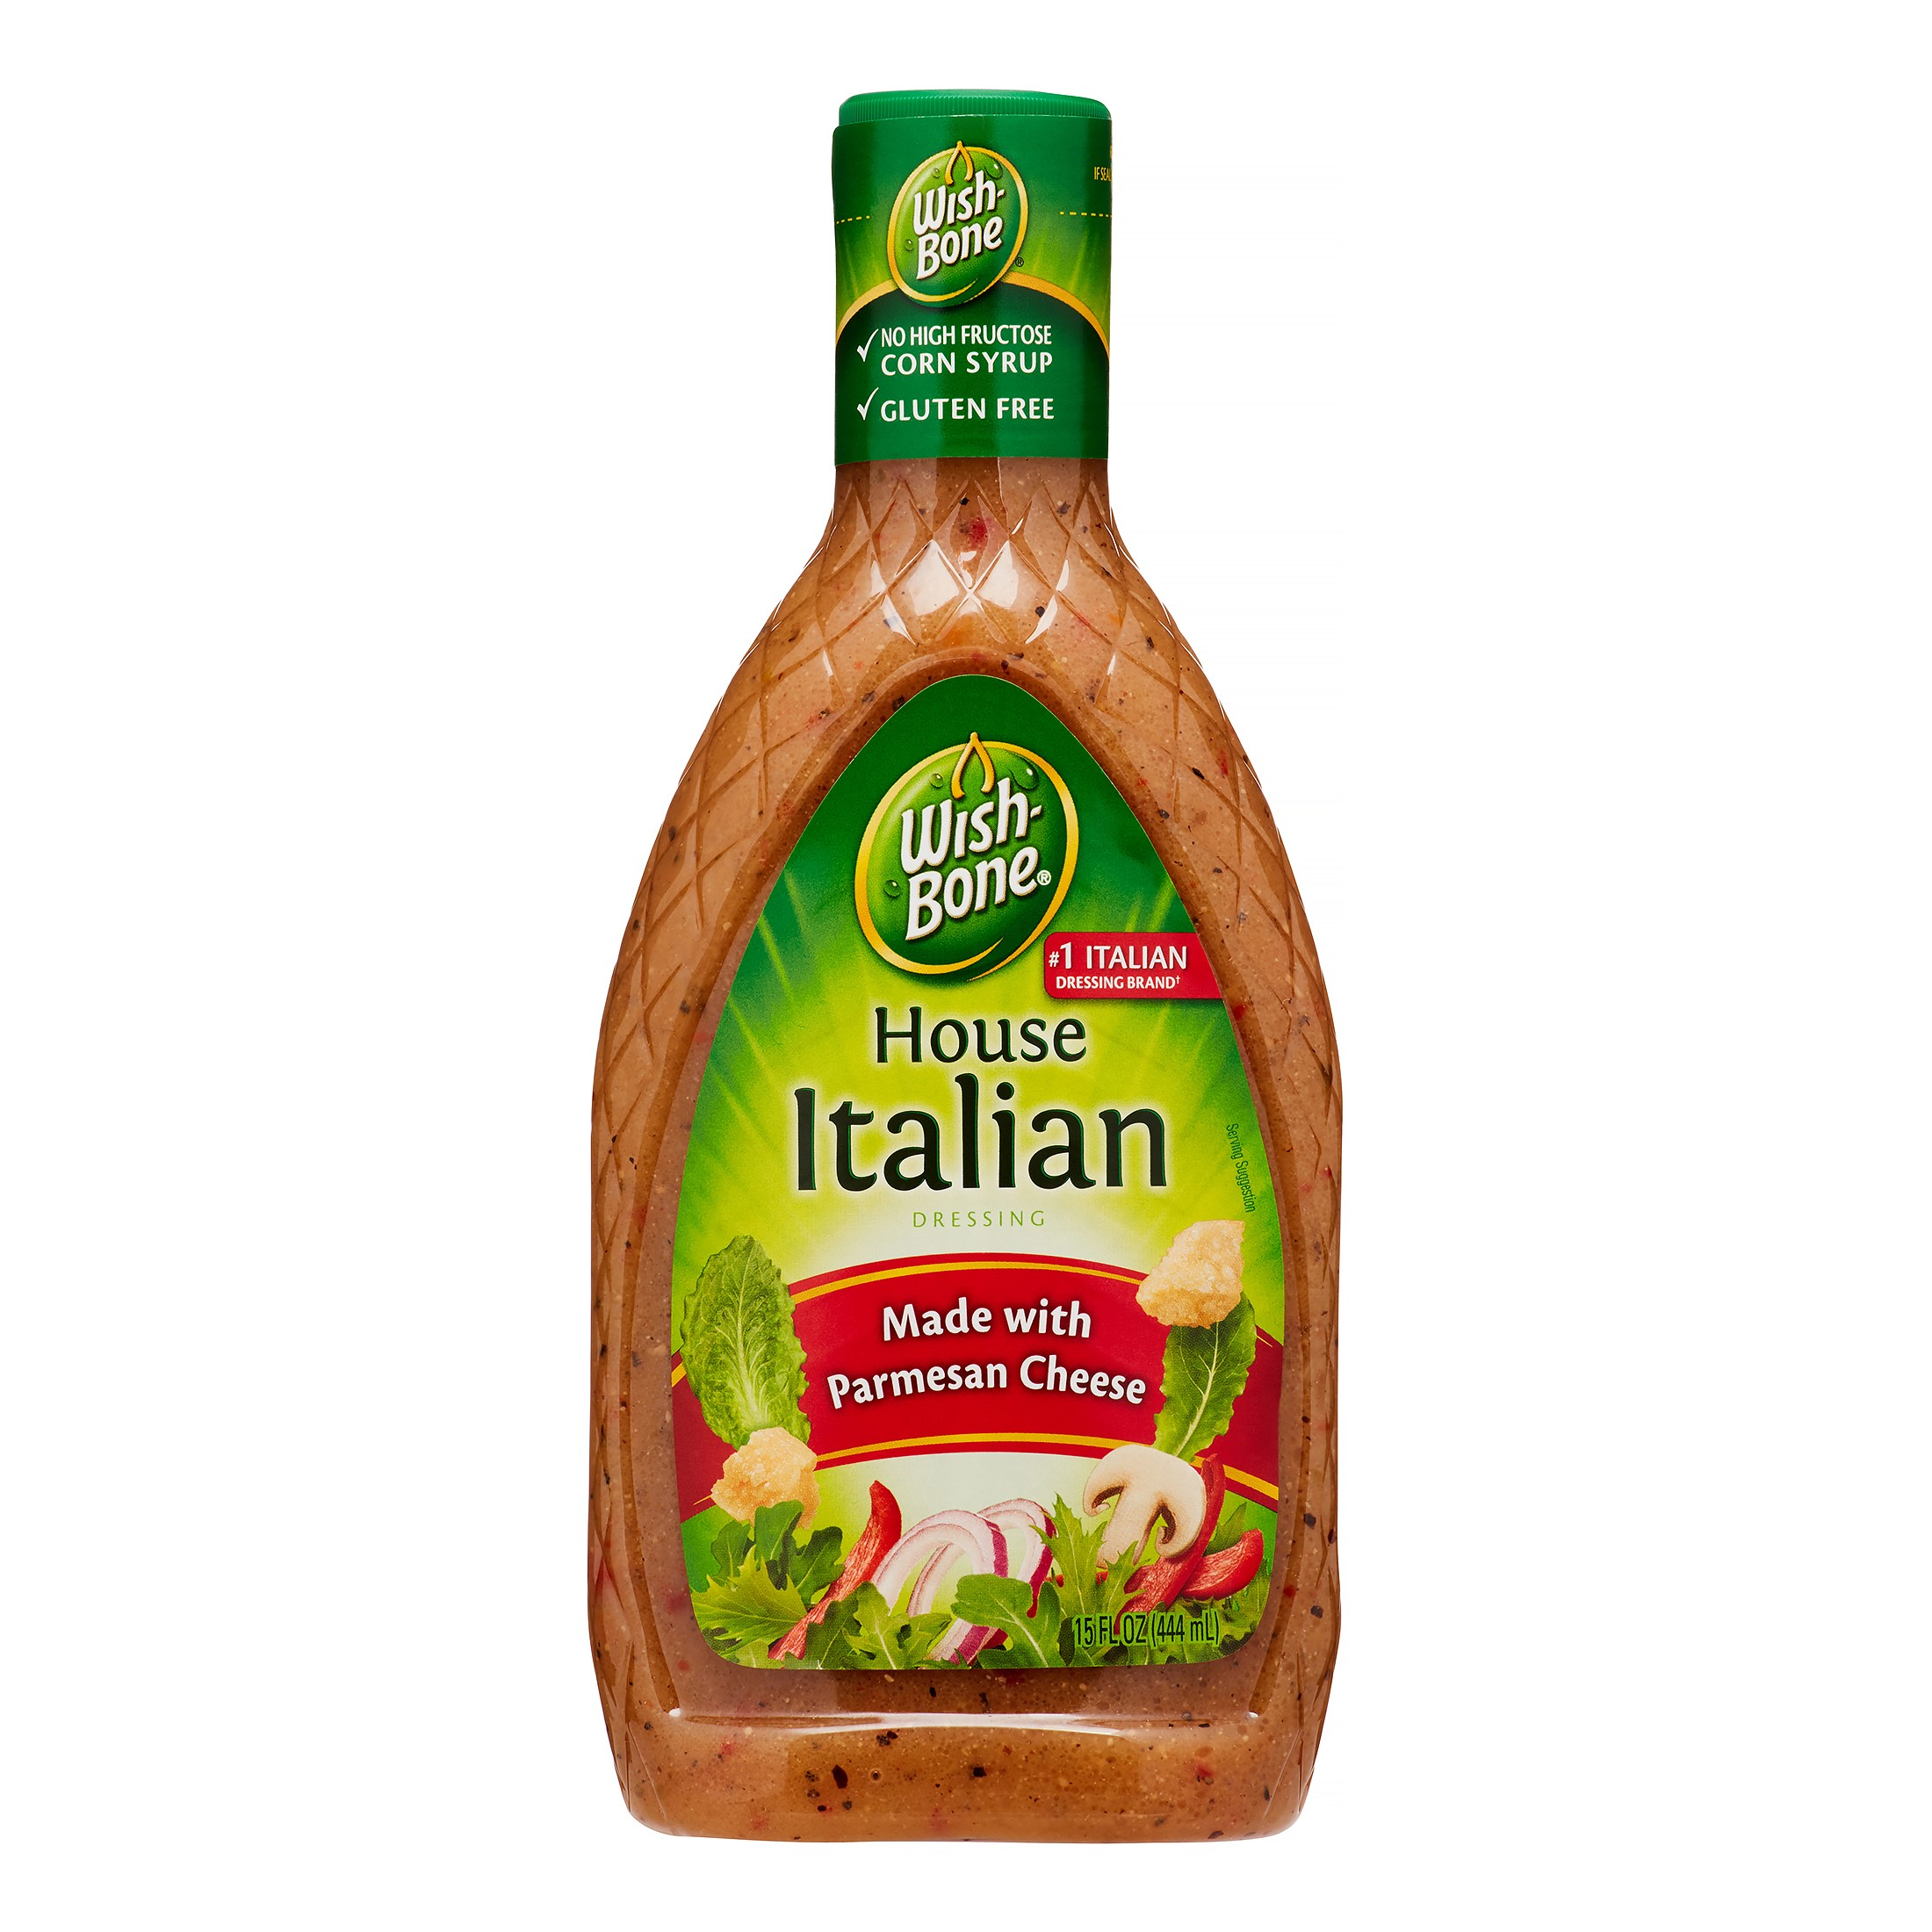 (3 Pack) Wish-Bone Salad Dressing, House Italian, 15 Fl Oz